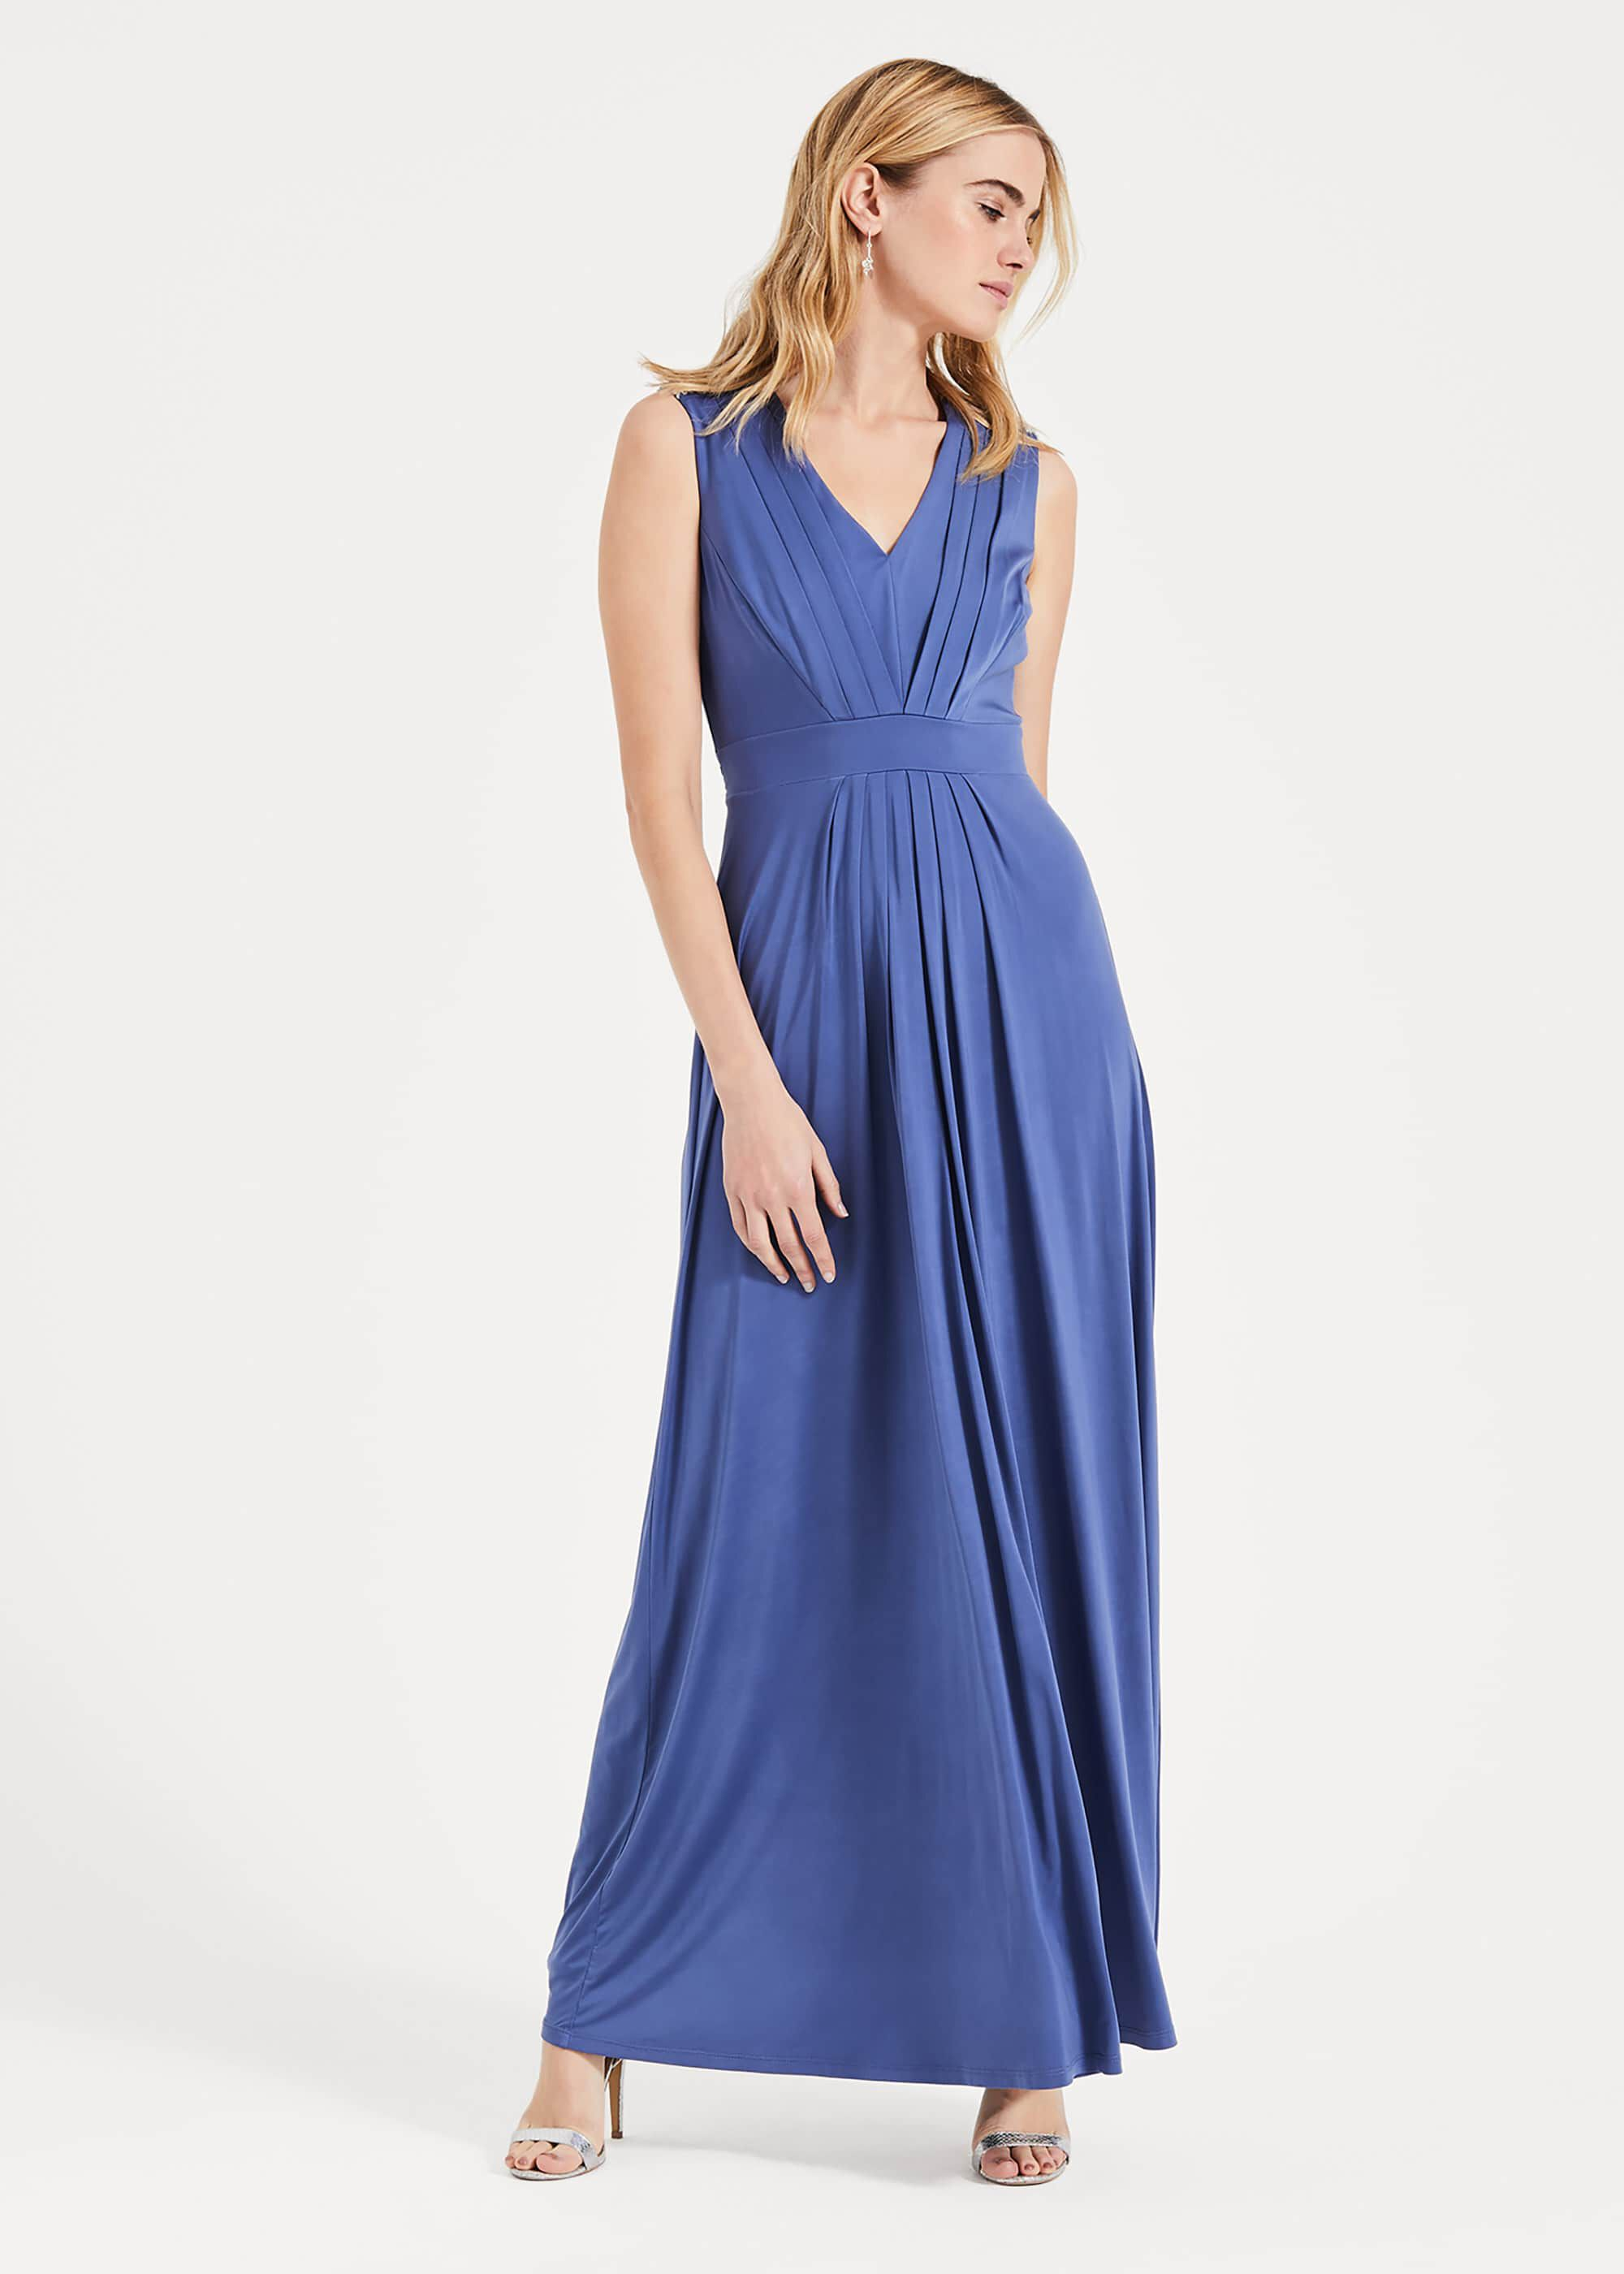 Phase Eight Tomasi Beaded Shoulder Dress, Blue, Maxi